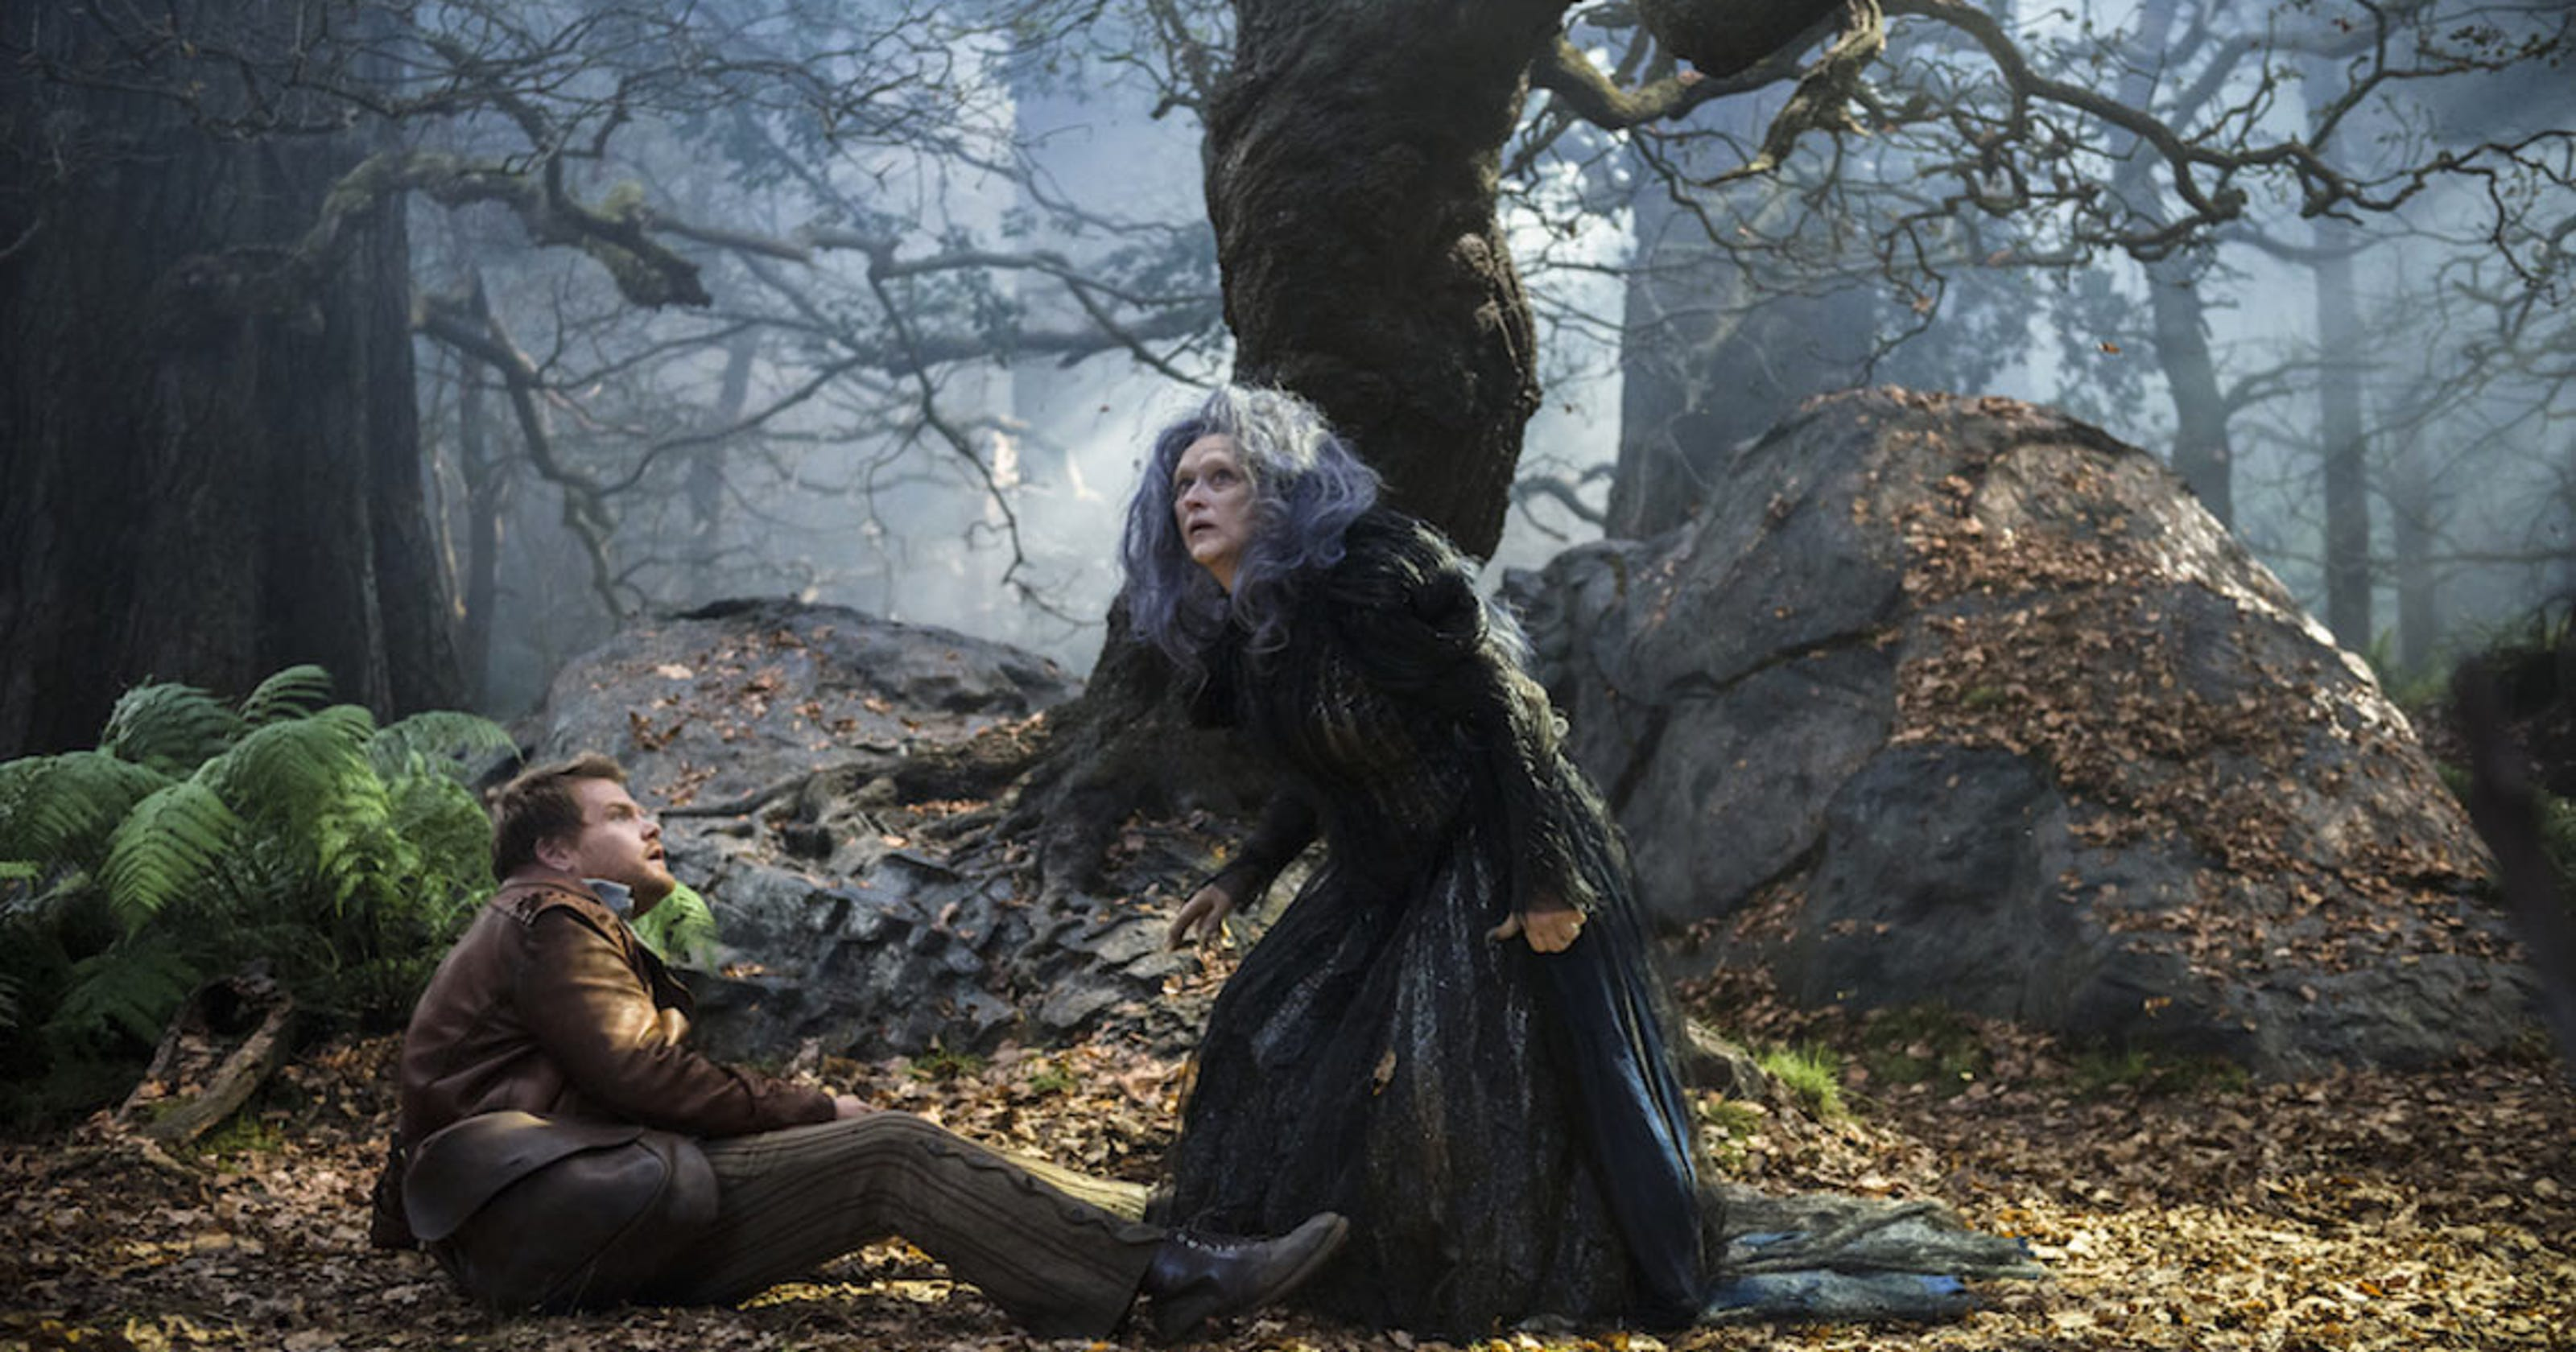 Movie review: Charming cast anchors dark 'Into the Woods'